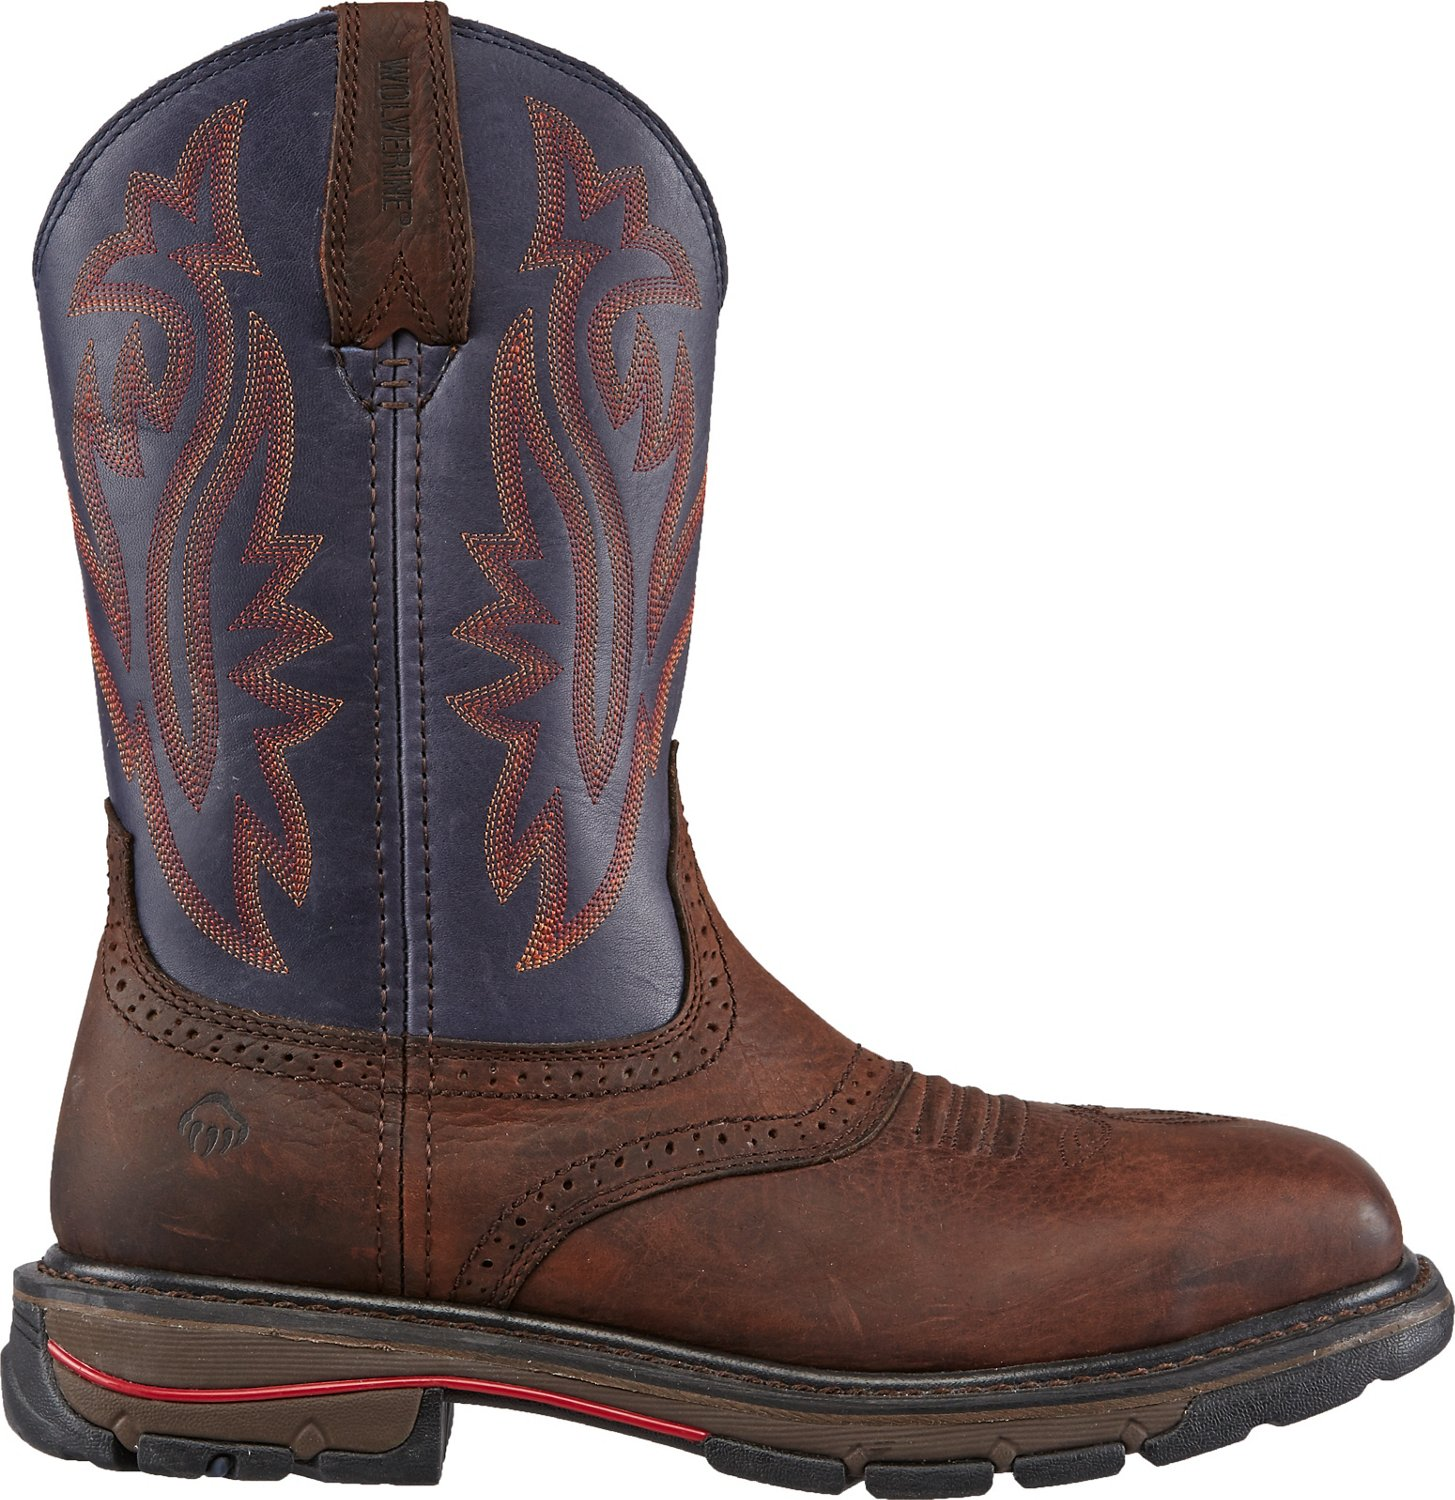 be15b427420991 Display product reviews for Wolverine Men's Javelina High Plains EH Steel  Toe Western Wellington Work Boots